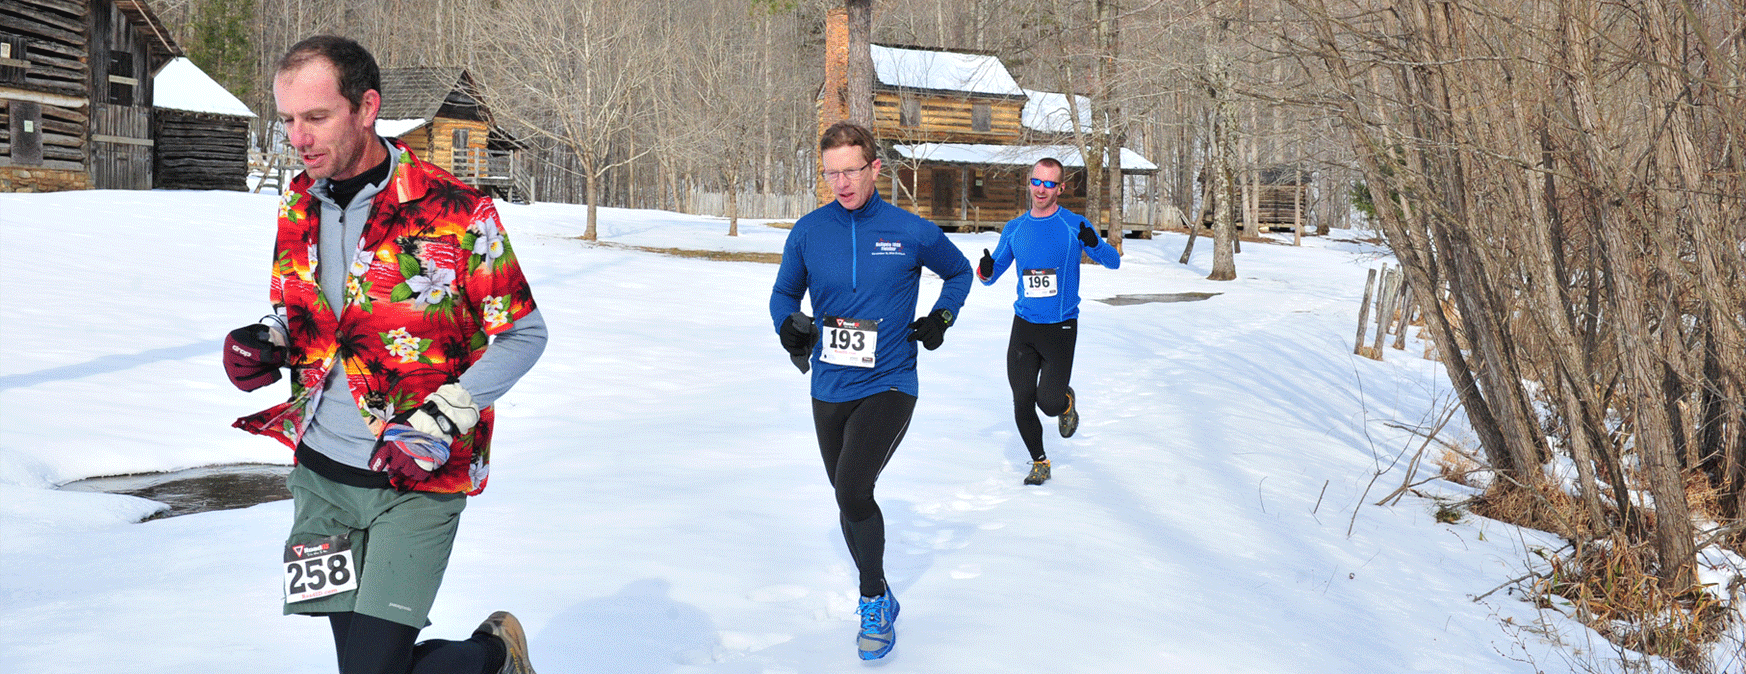 Frozen Toe 10k 2015